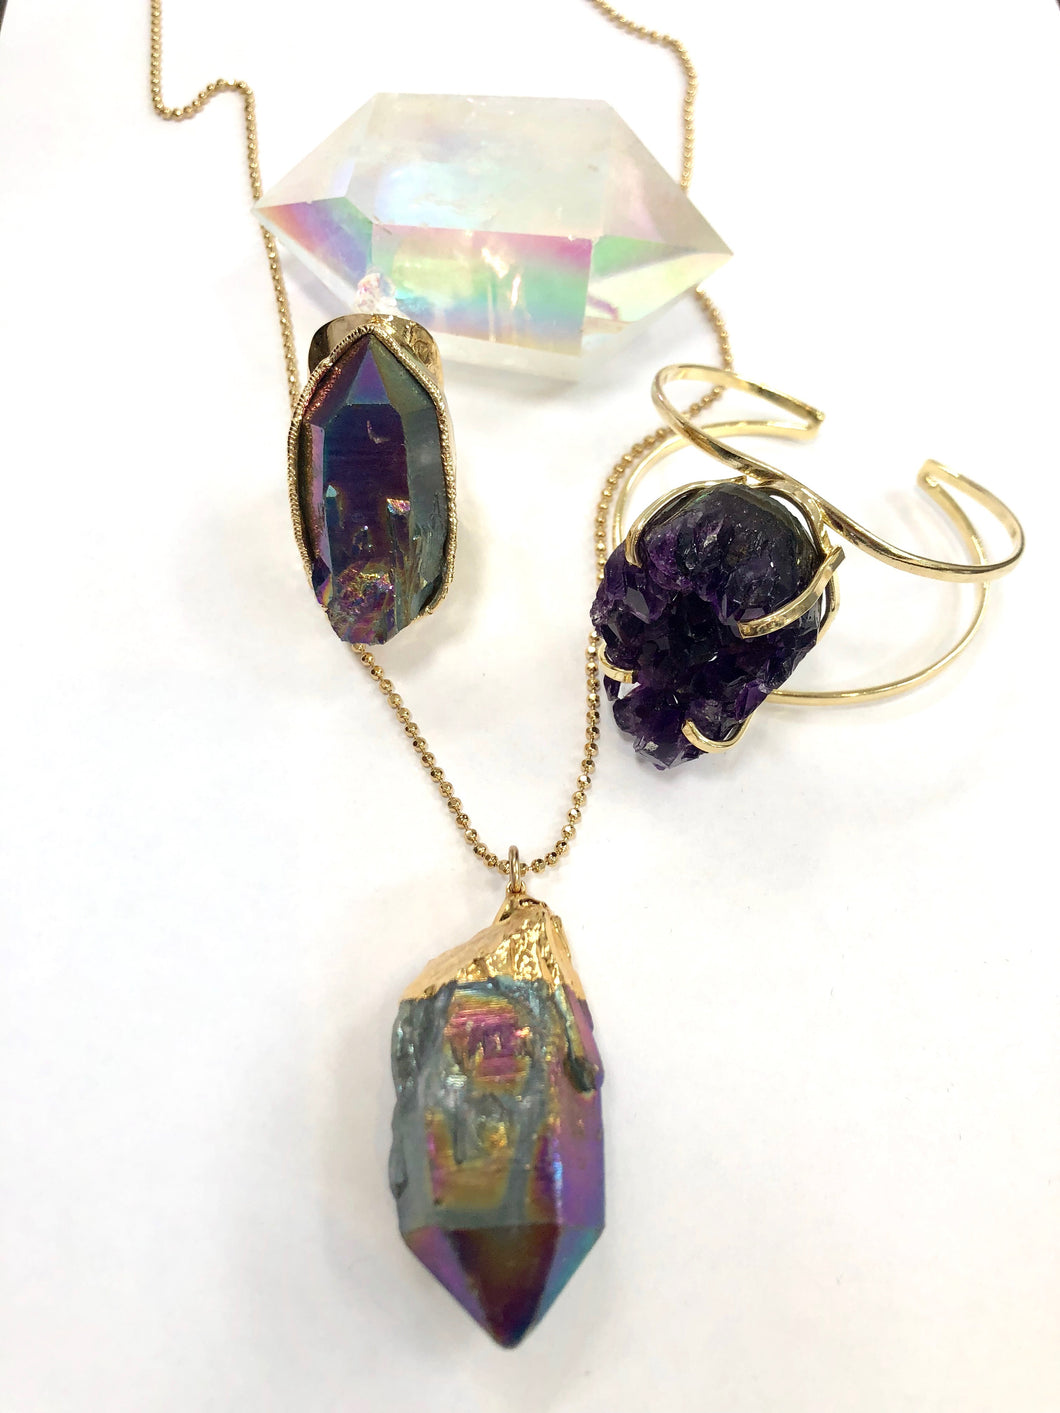 Rainbow Aura Quartz Necklace